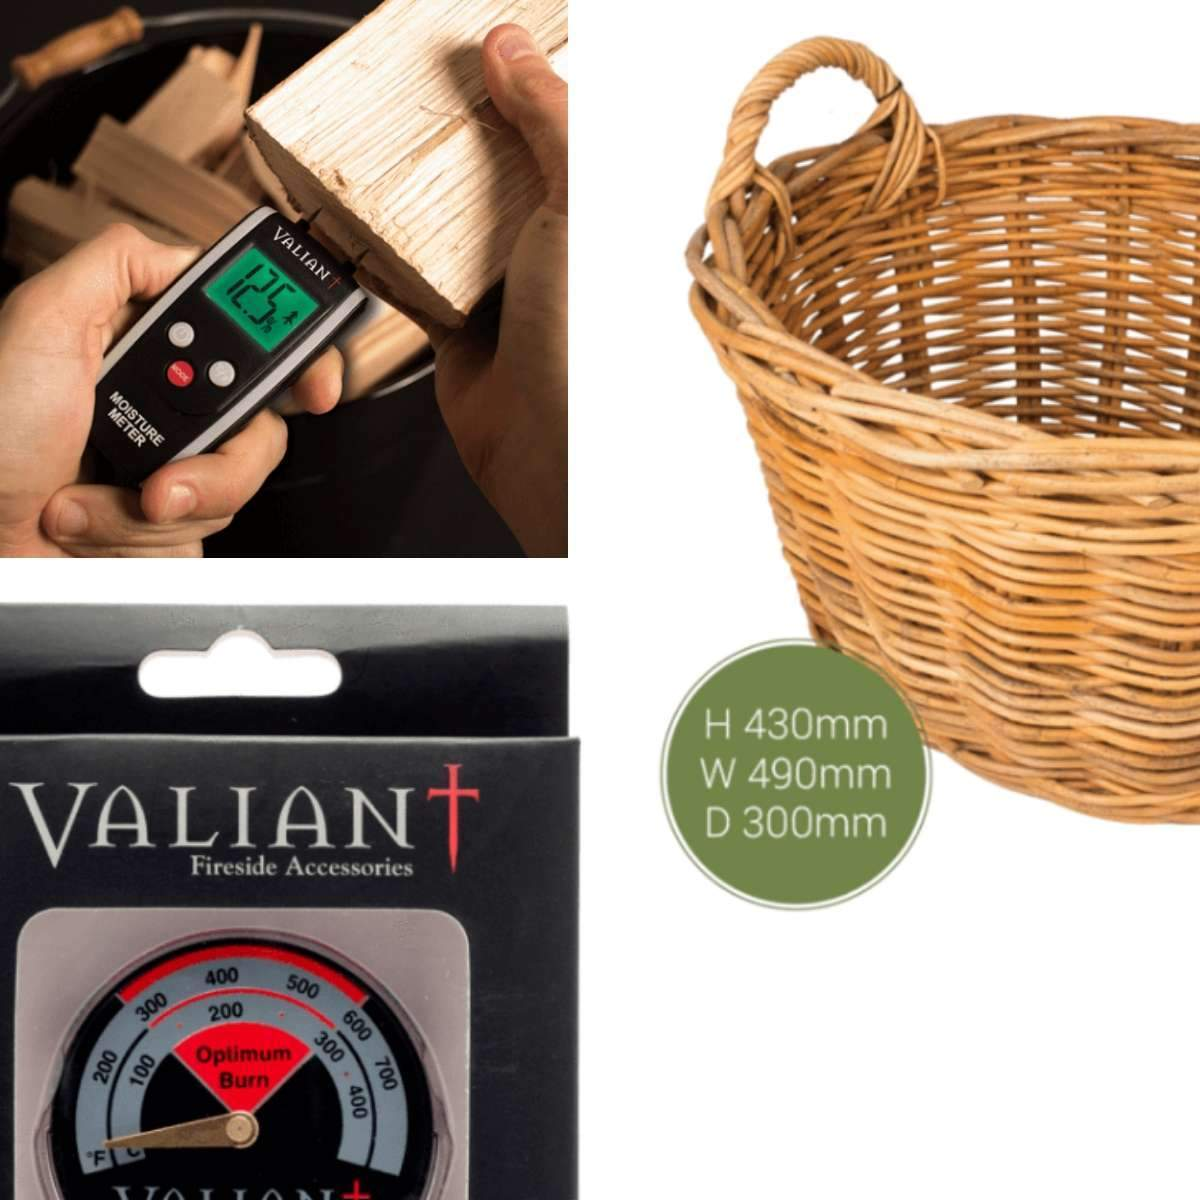 The Stove Fitter's Warehouse SOLD WITH STOVE: Log basket, Stove Thermometer & Moisture Meter